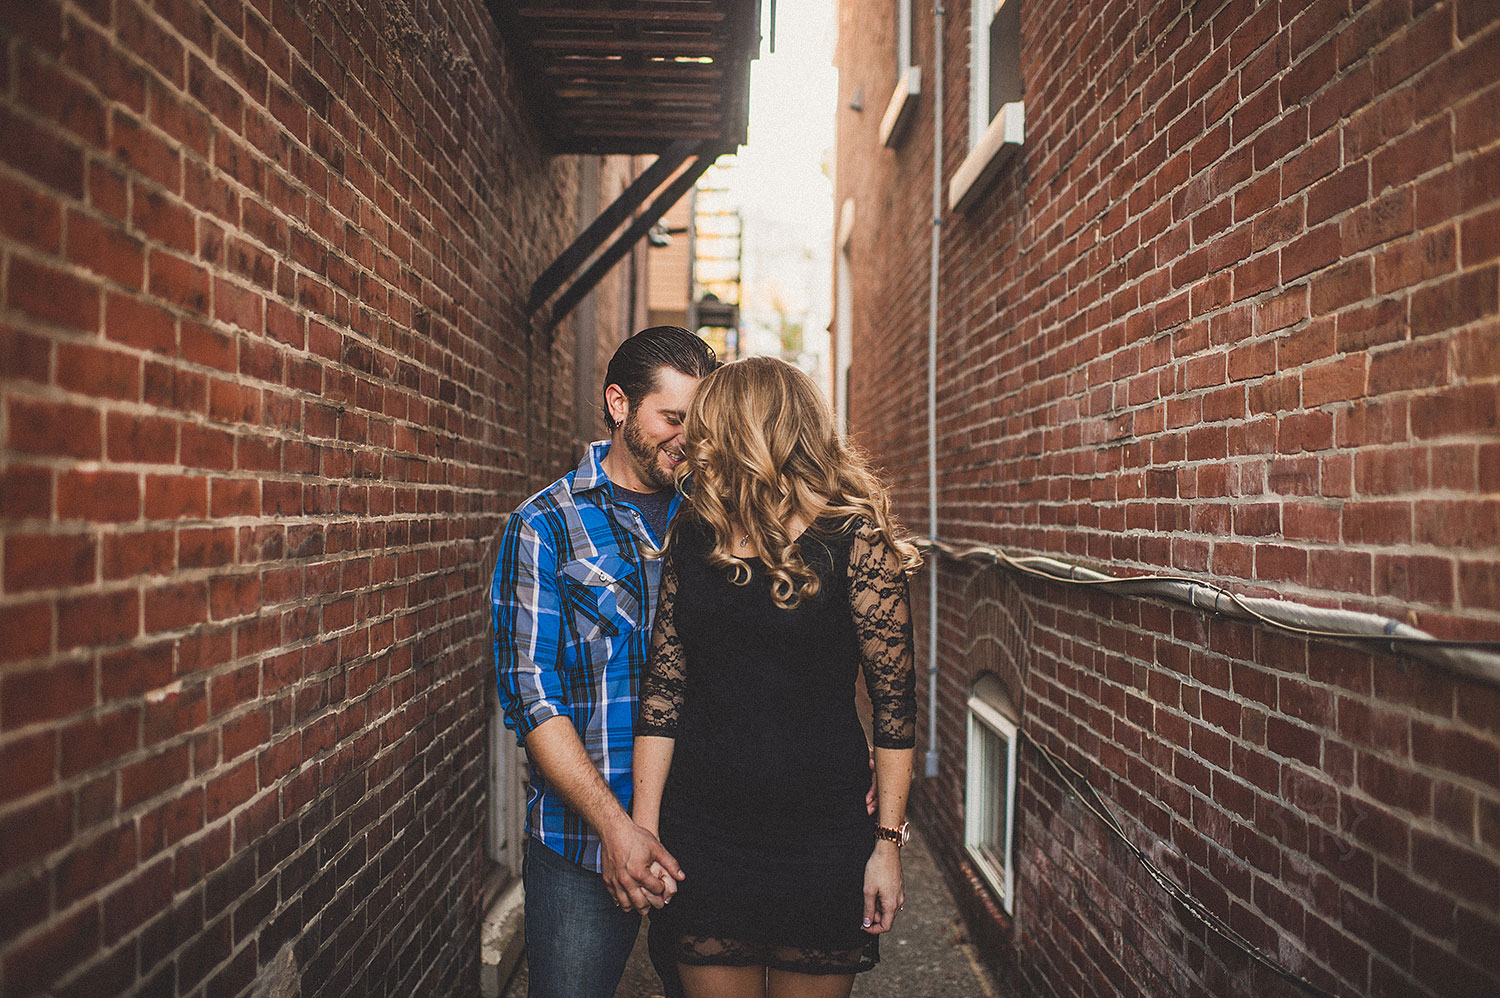 pat-robinson-photography-wilmington-engagement-session-2.jpg